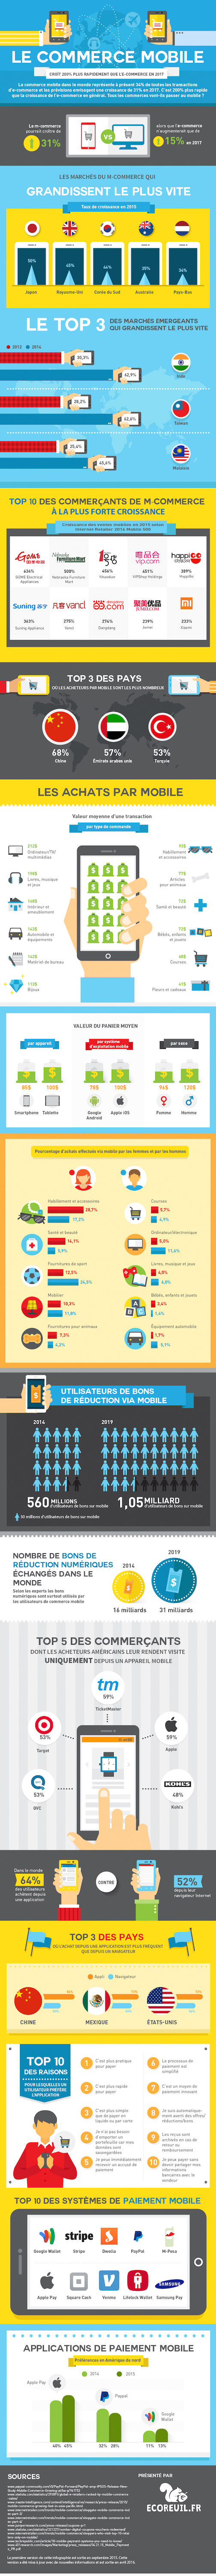 m-commerce vs e-commerce_infographie